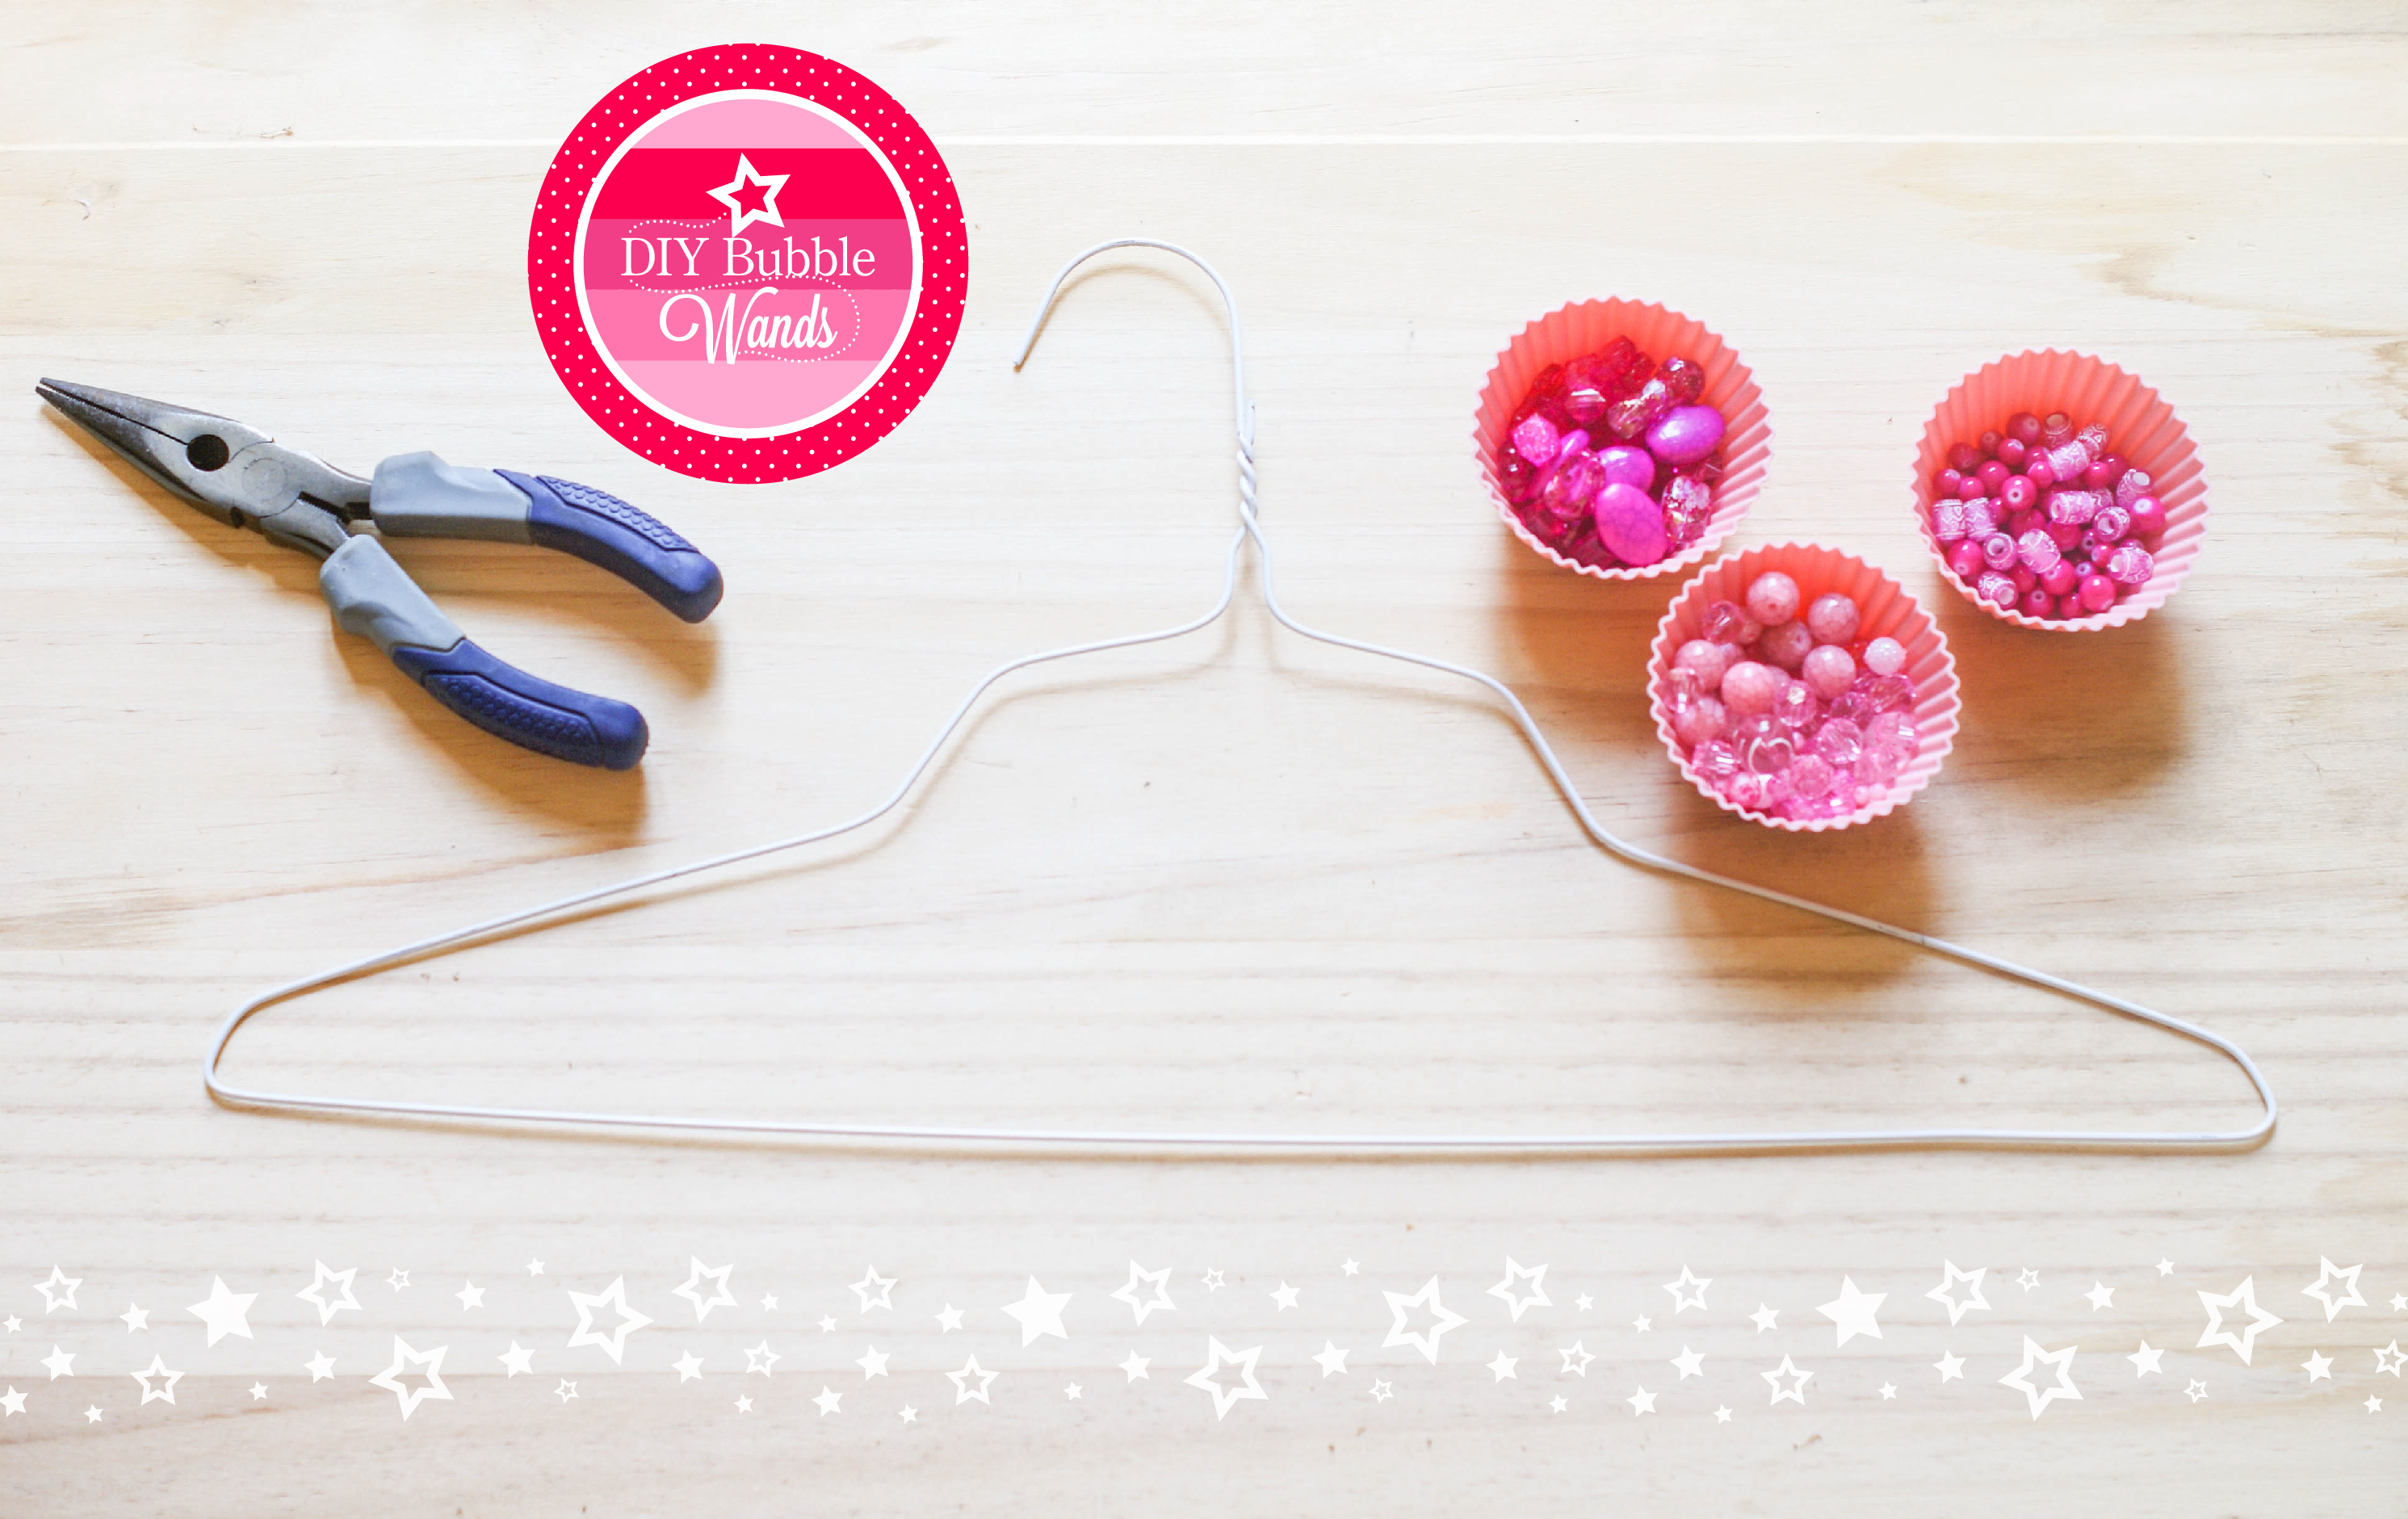 Ruff draft diy bubble wand american girl style anders for American girl crafts diy